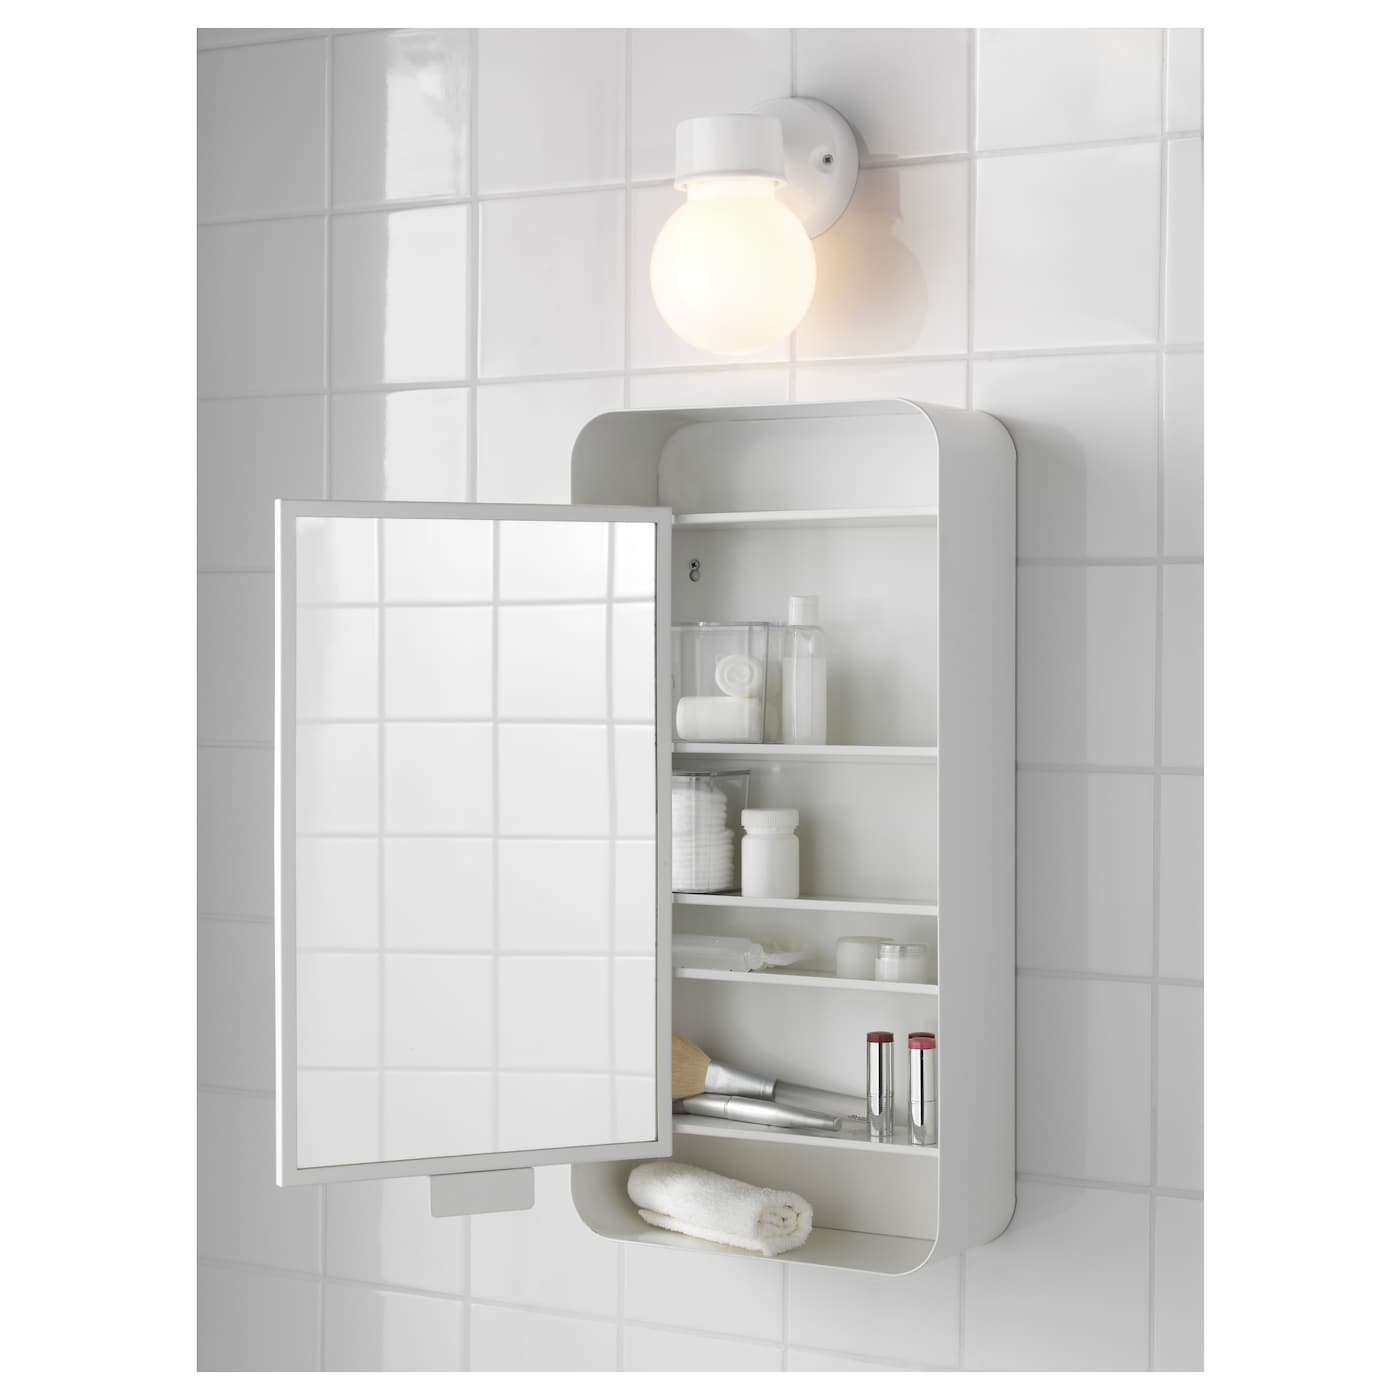 Gunnern Mirror Cabinet With 1 Door White 31x62 Cm Ikea